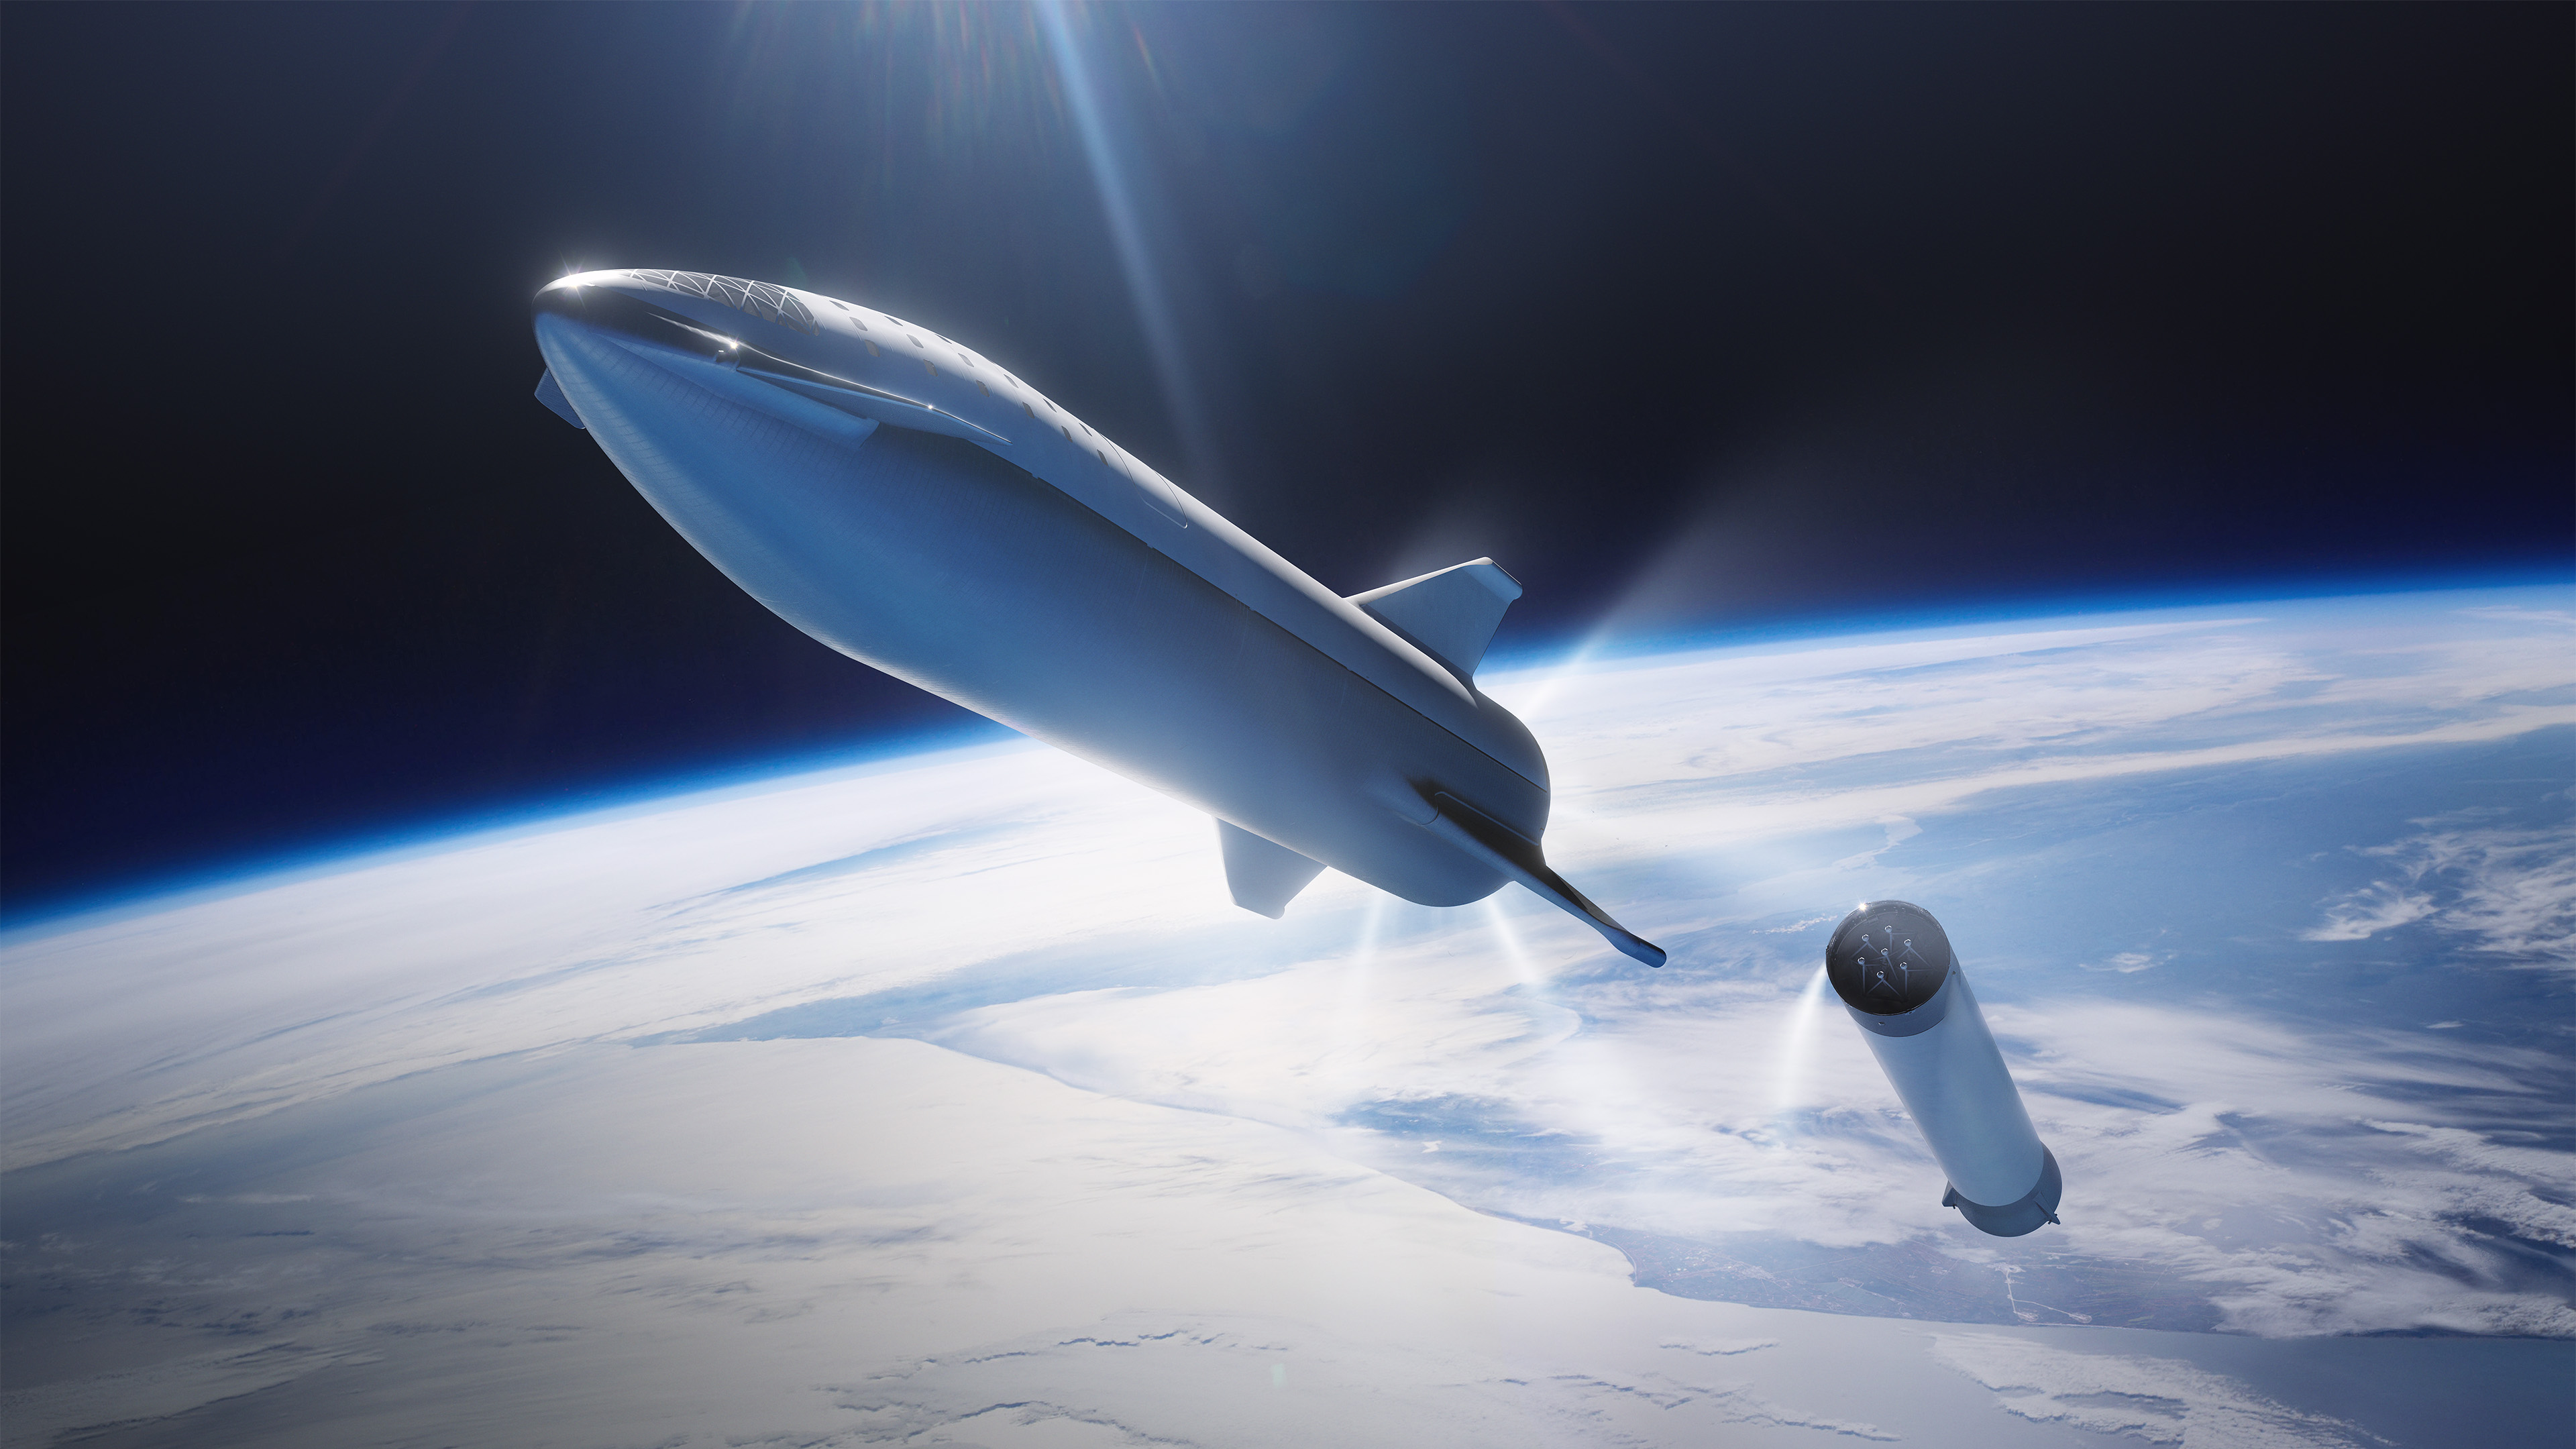 2019 predictions for the space industry